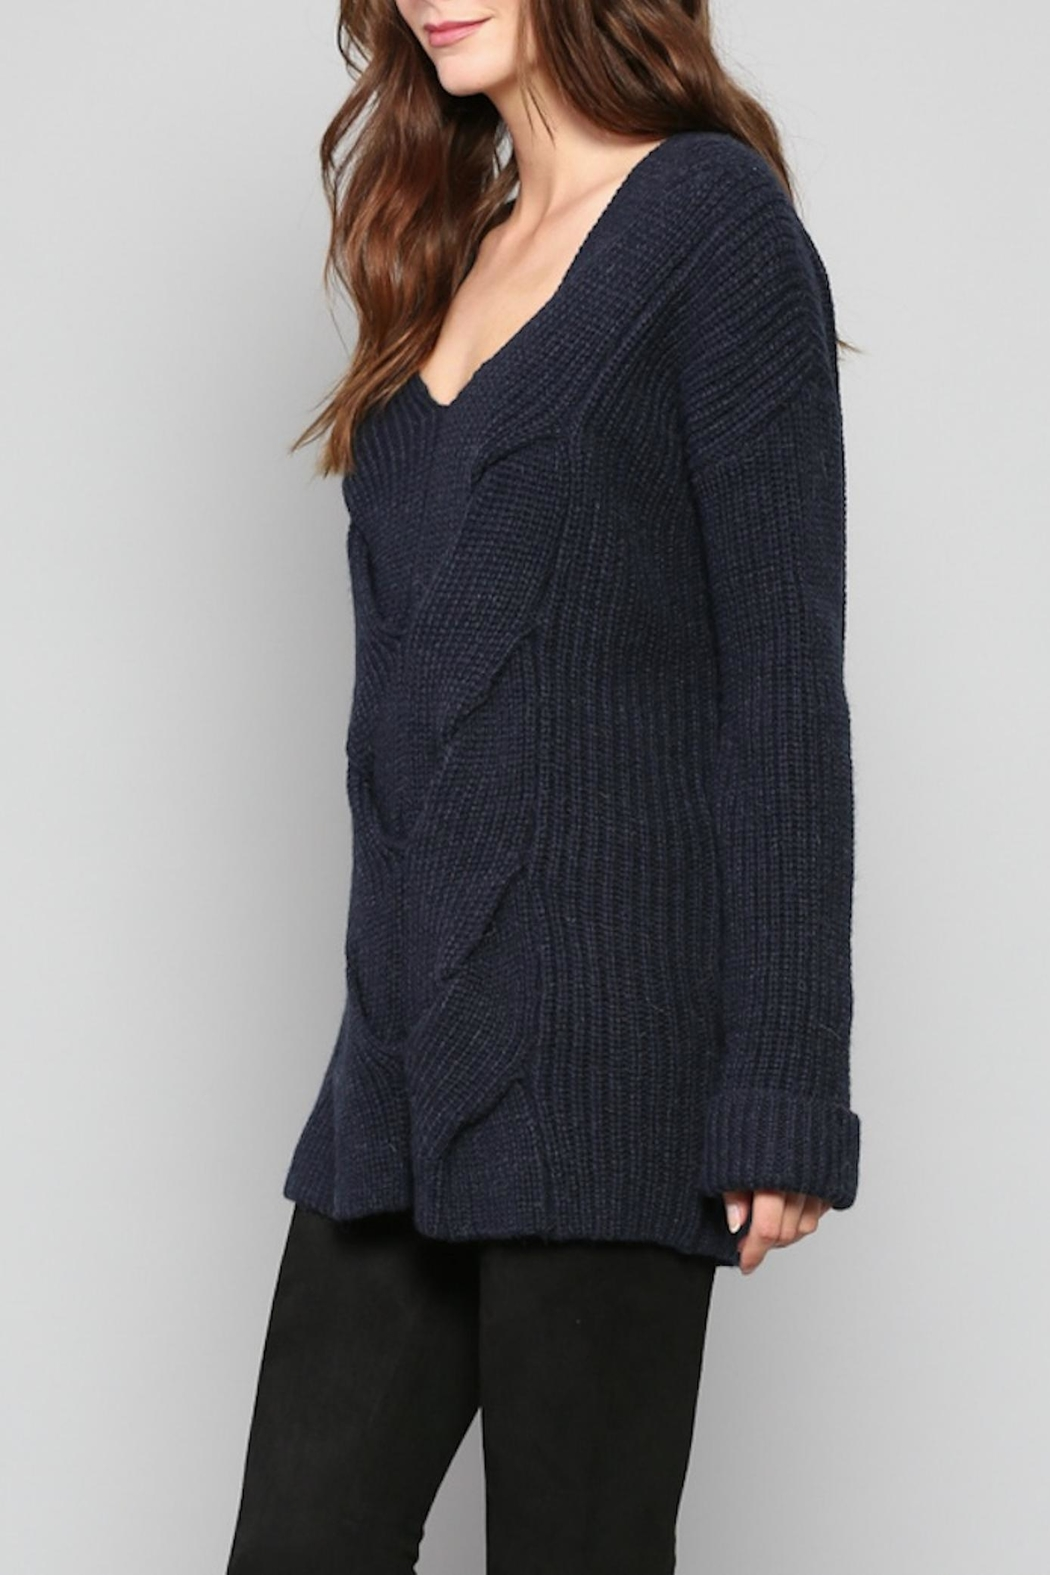 Rose & Eye Navy Cable Knit Top from Long Island — Shoptiques